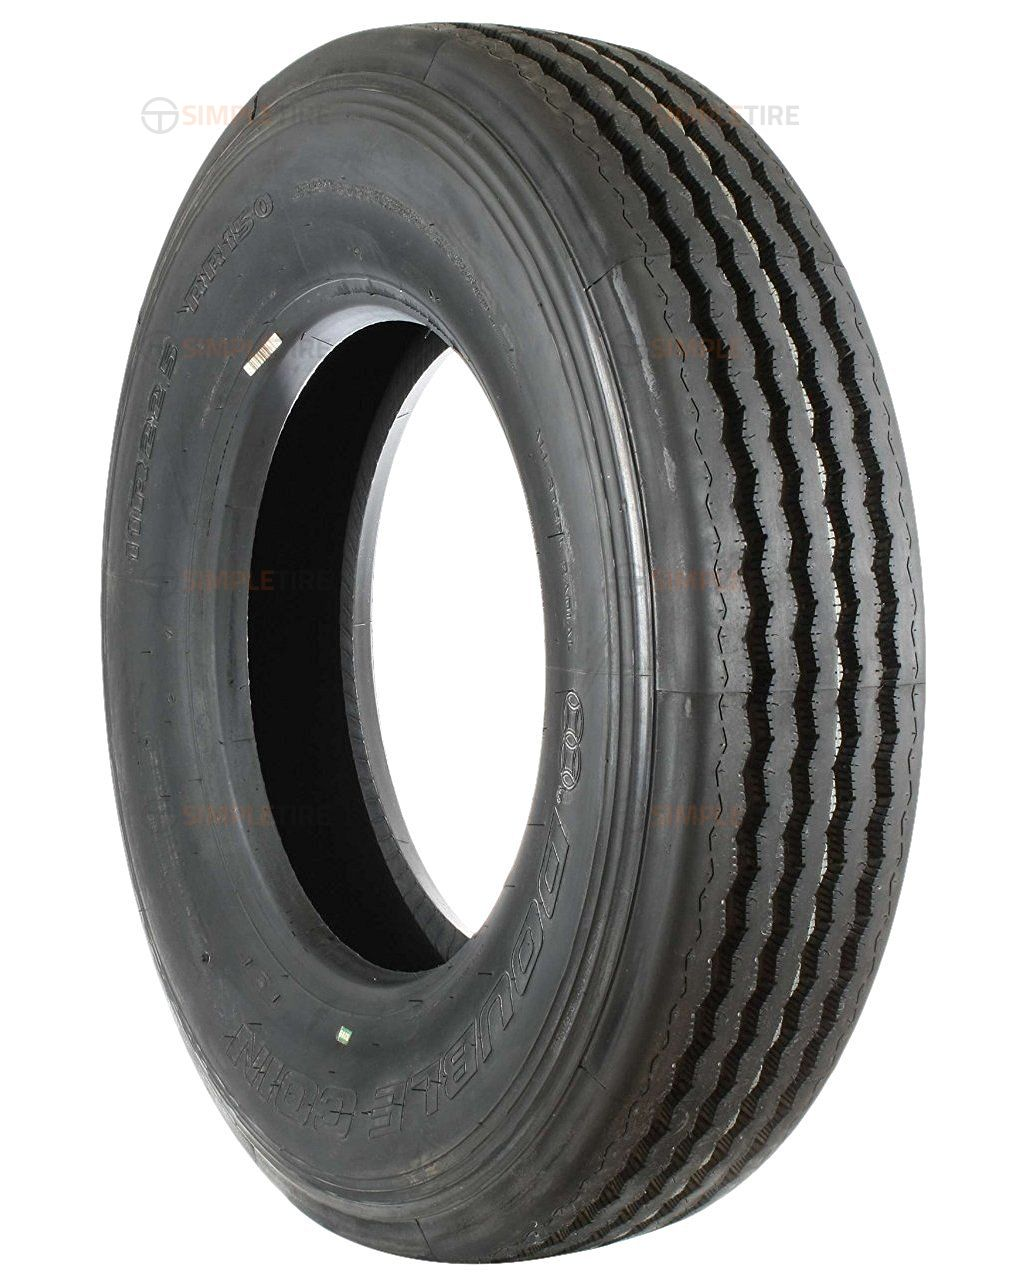 Del-Nat Double Coin RR150 285/75R-24.5 61268845